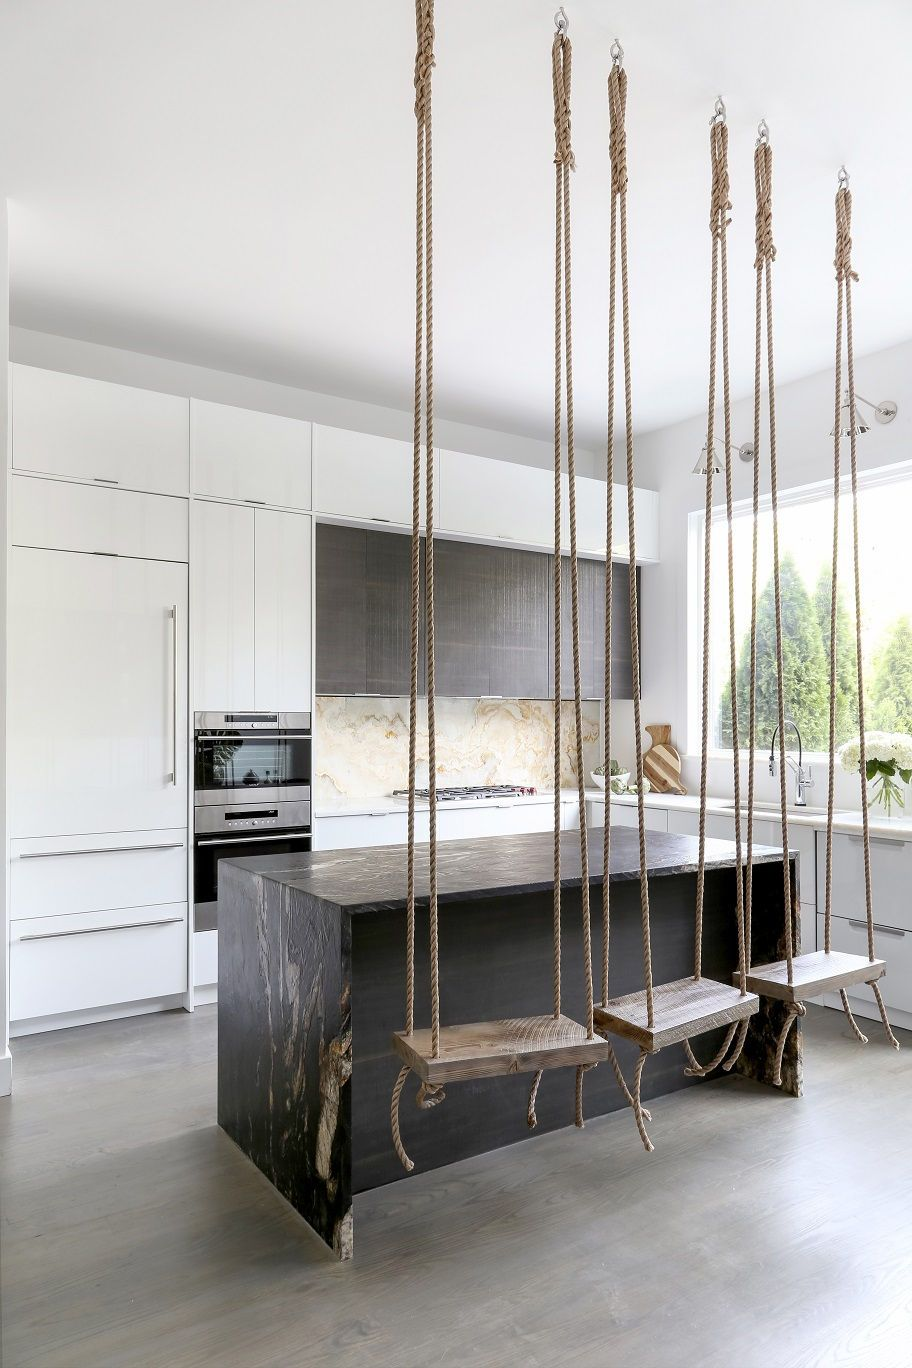 Photo of N.J. home makeover: Swings in the kitchen? This $250K Jersey City update brings the fun